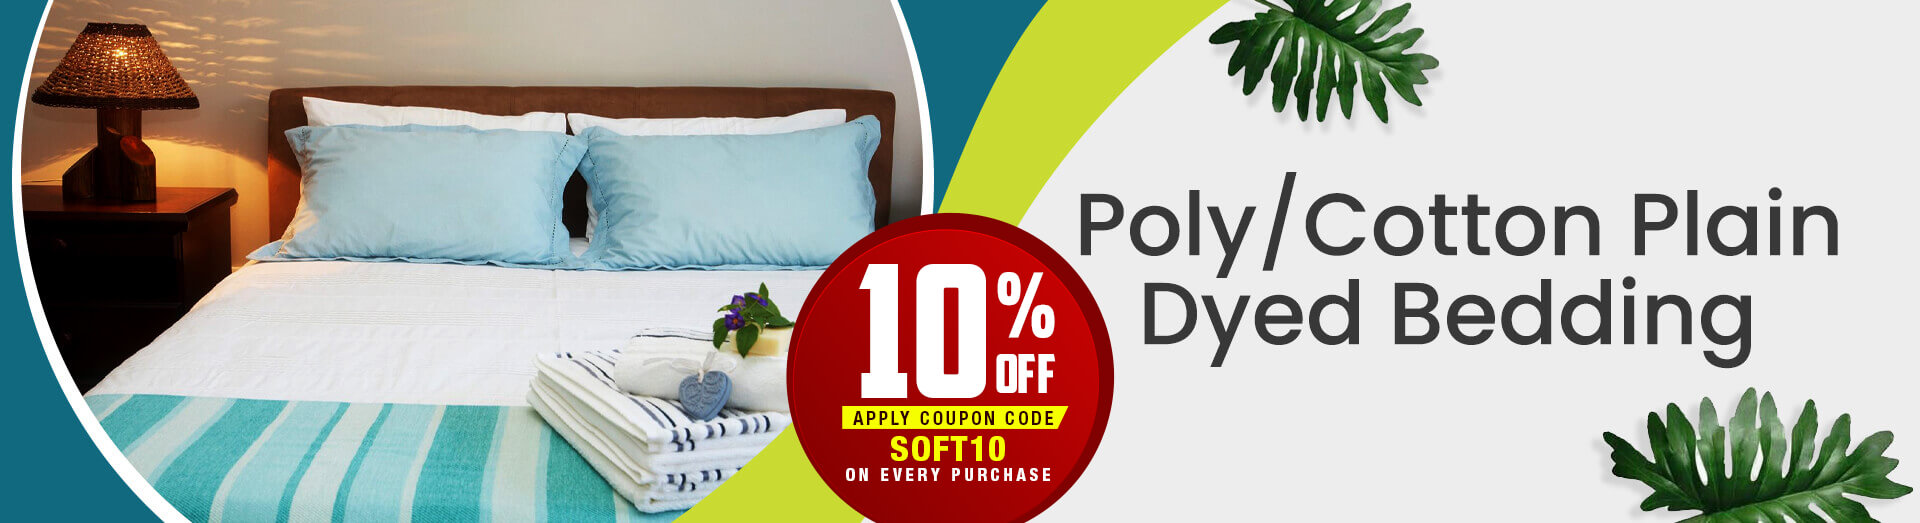 Poly/Cotton Plain Dyed Bedding